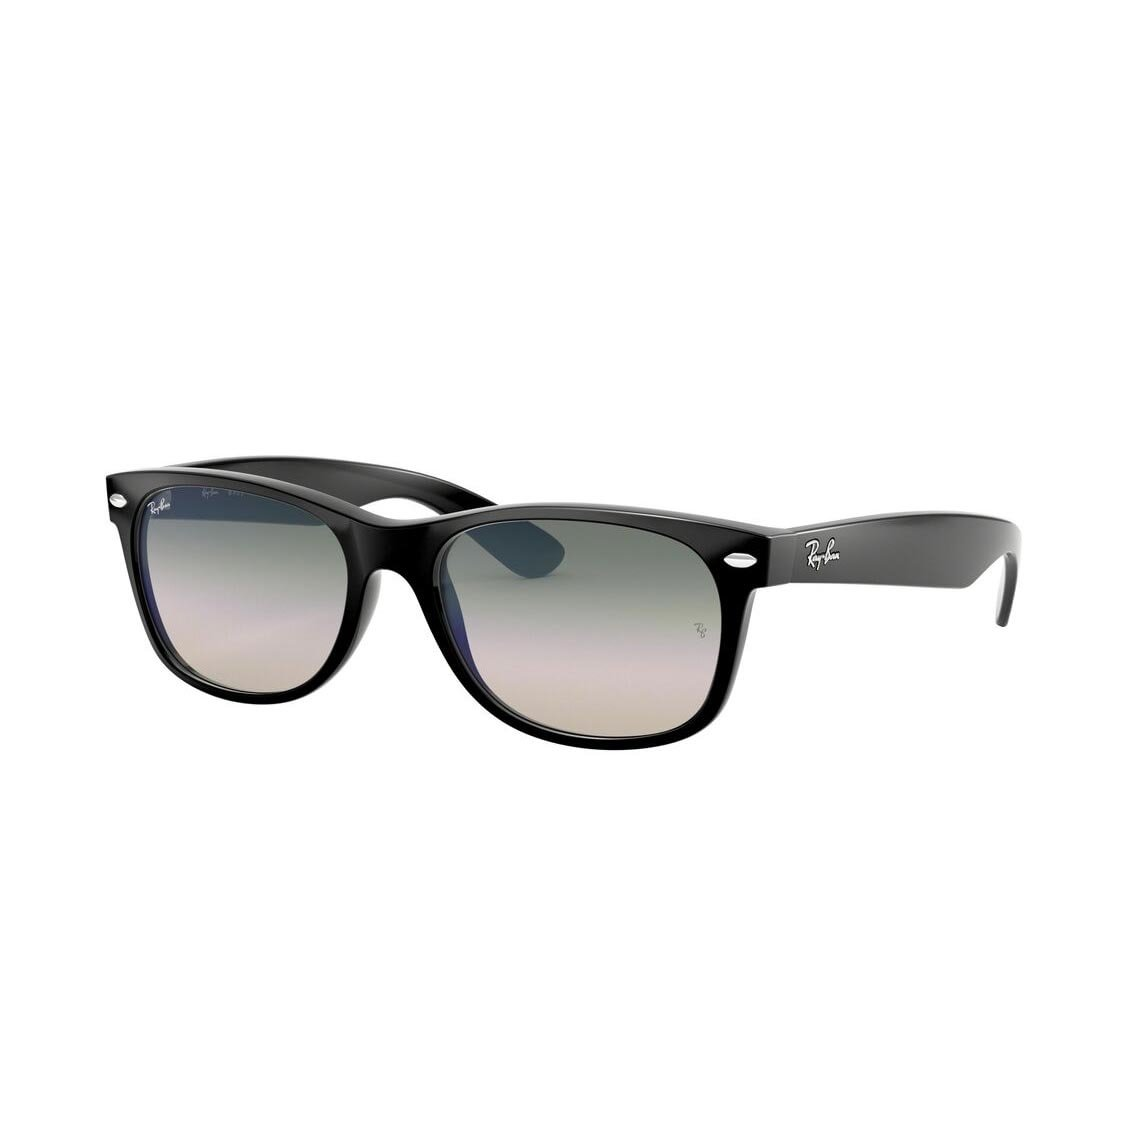 Ray-Ban New Wayfarer RB2132 901/3A 55